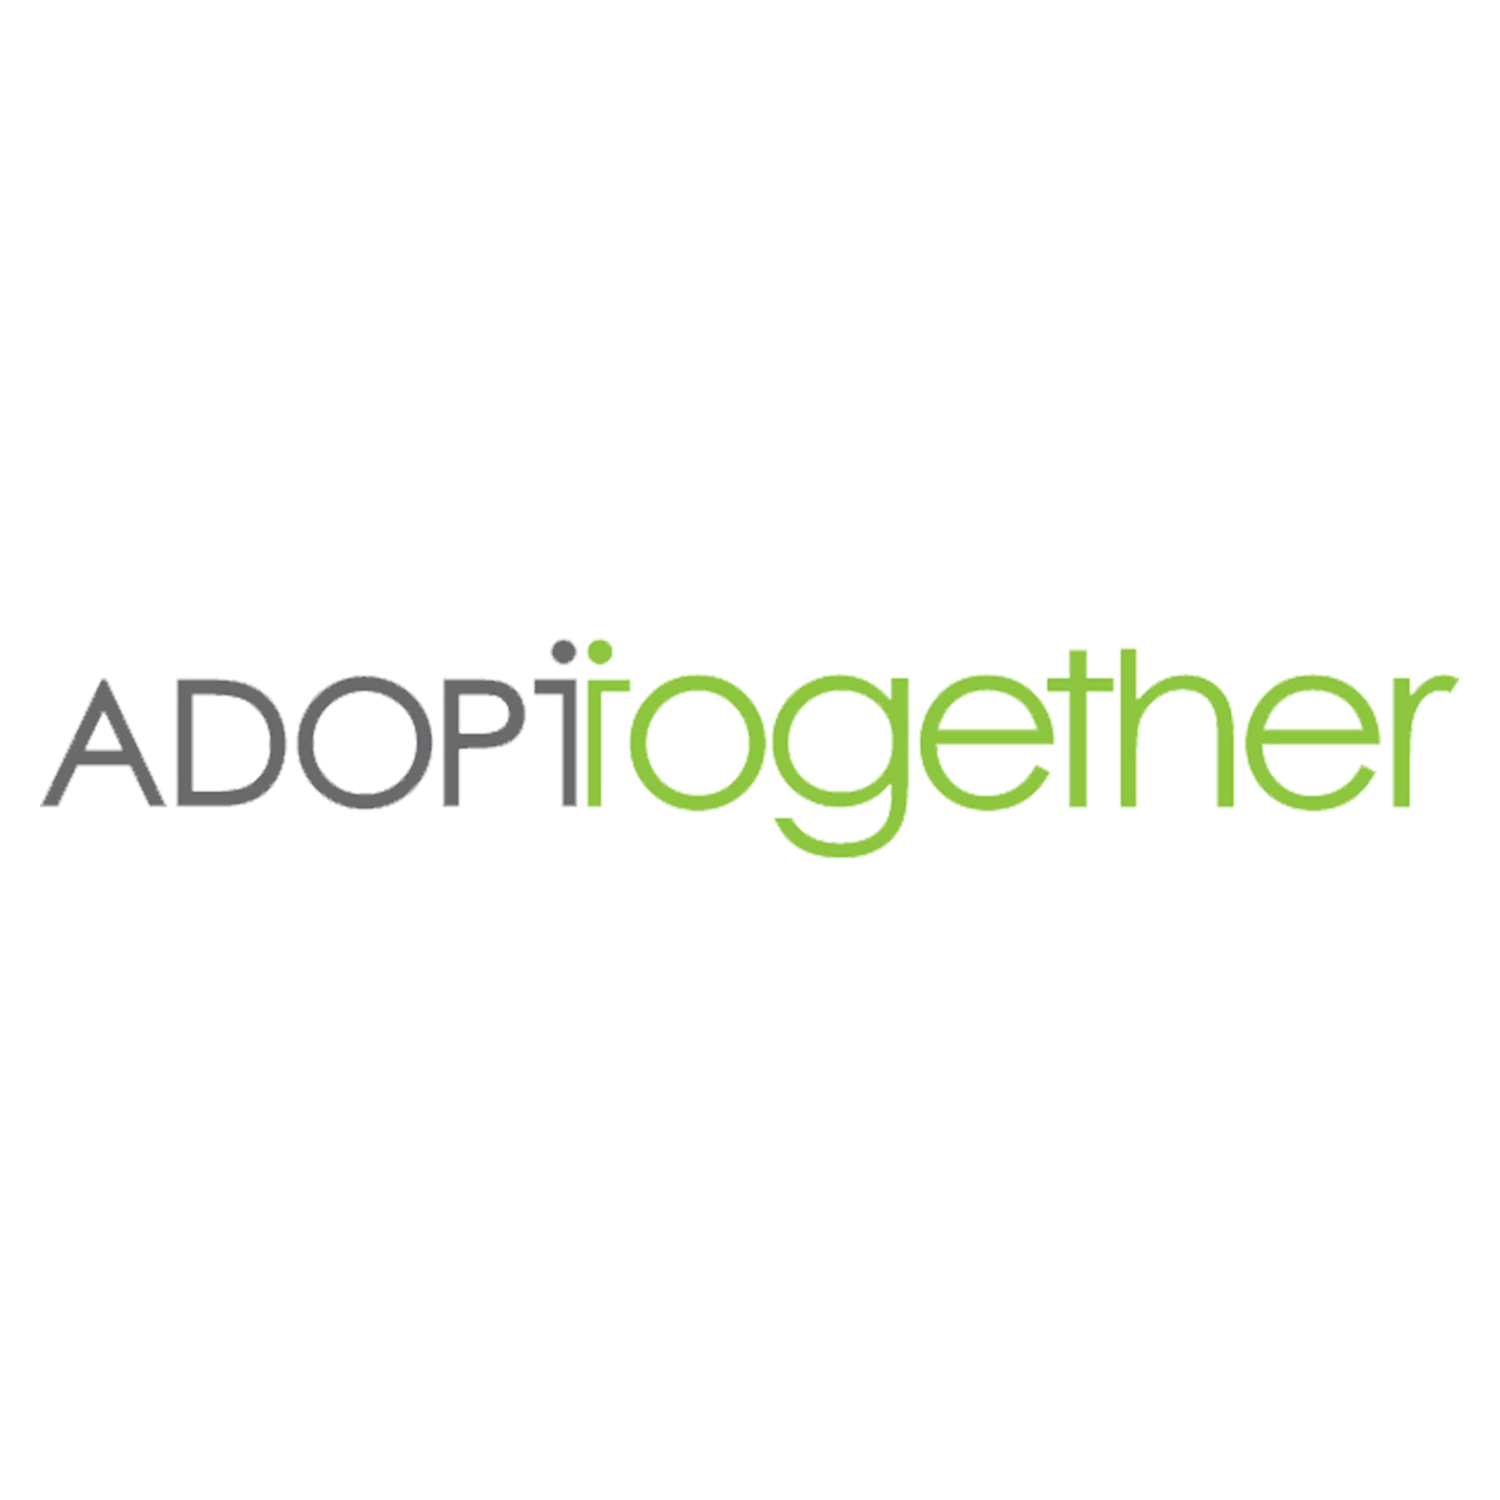 AdoptTogether_New.jpg